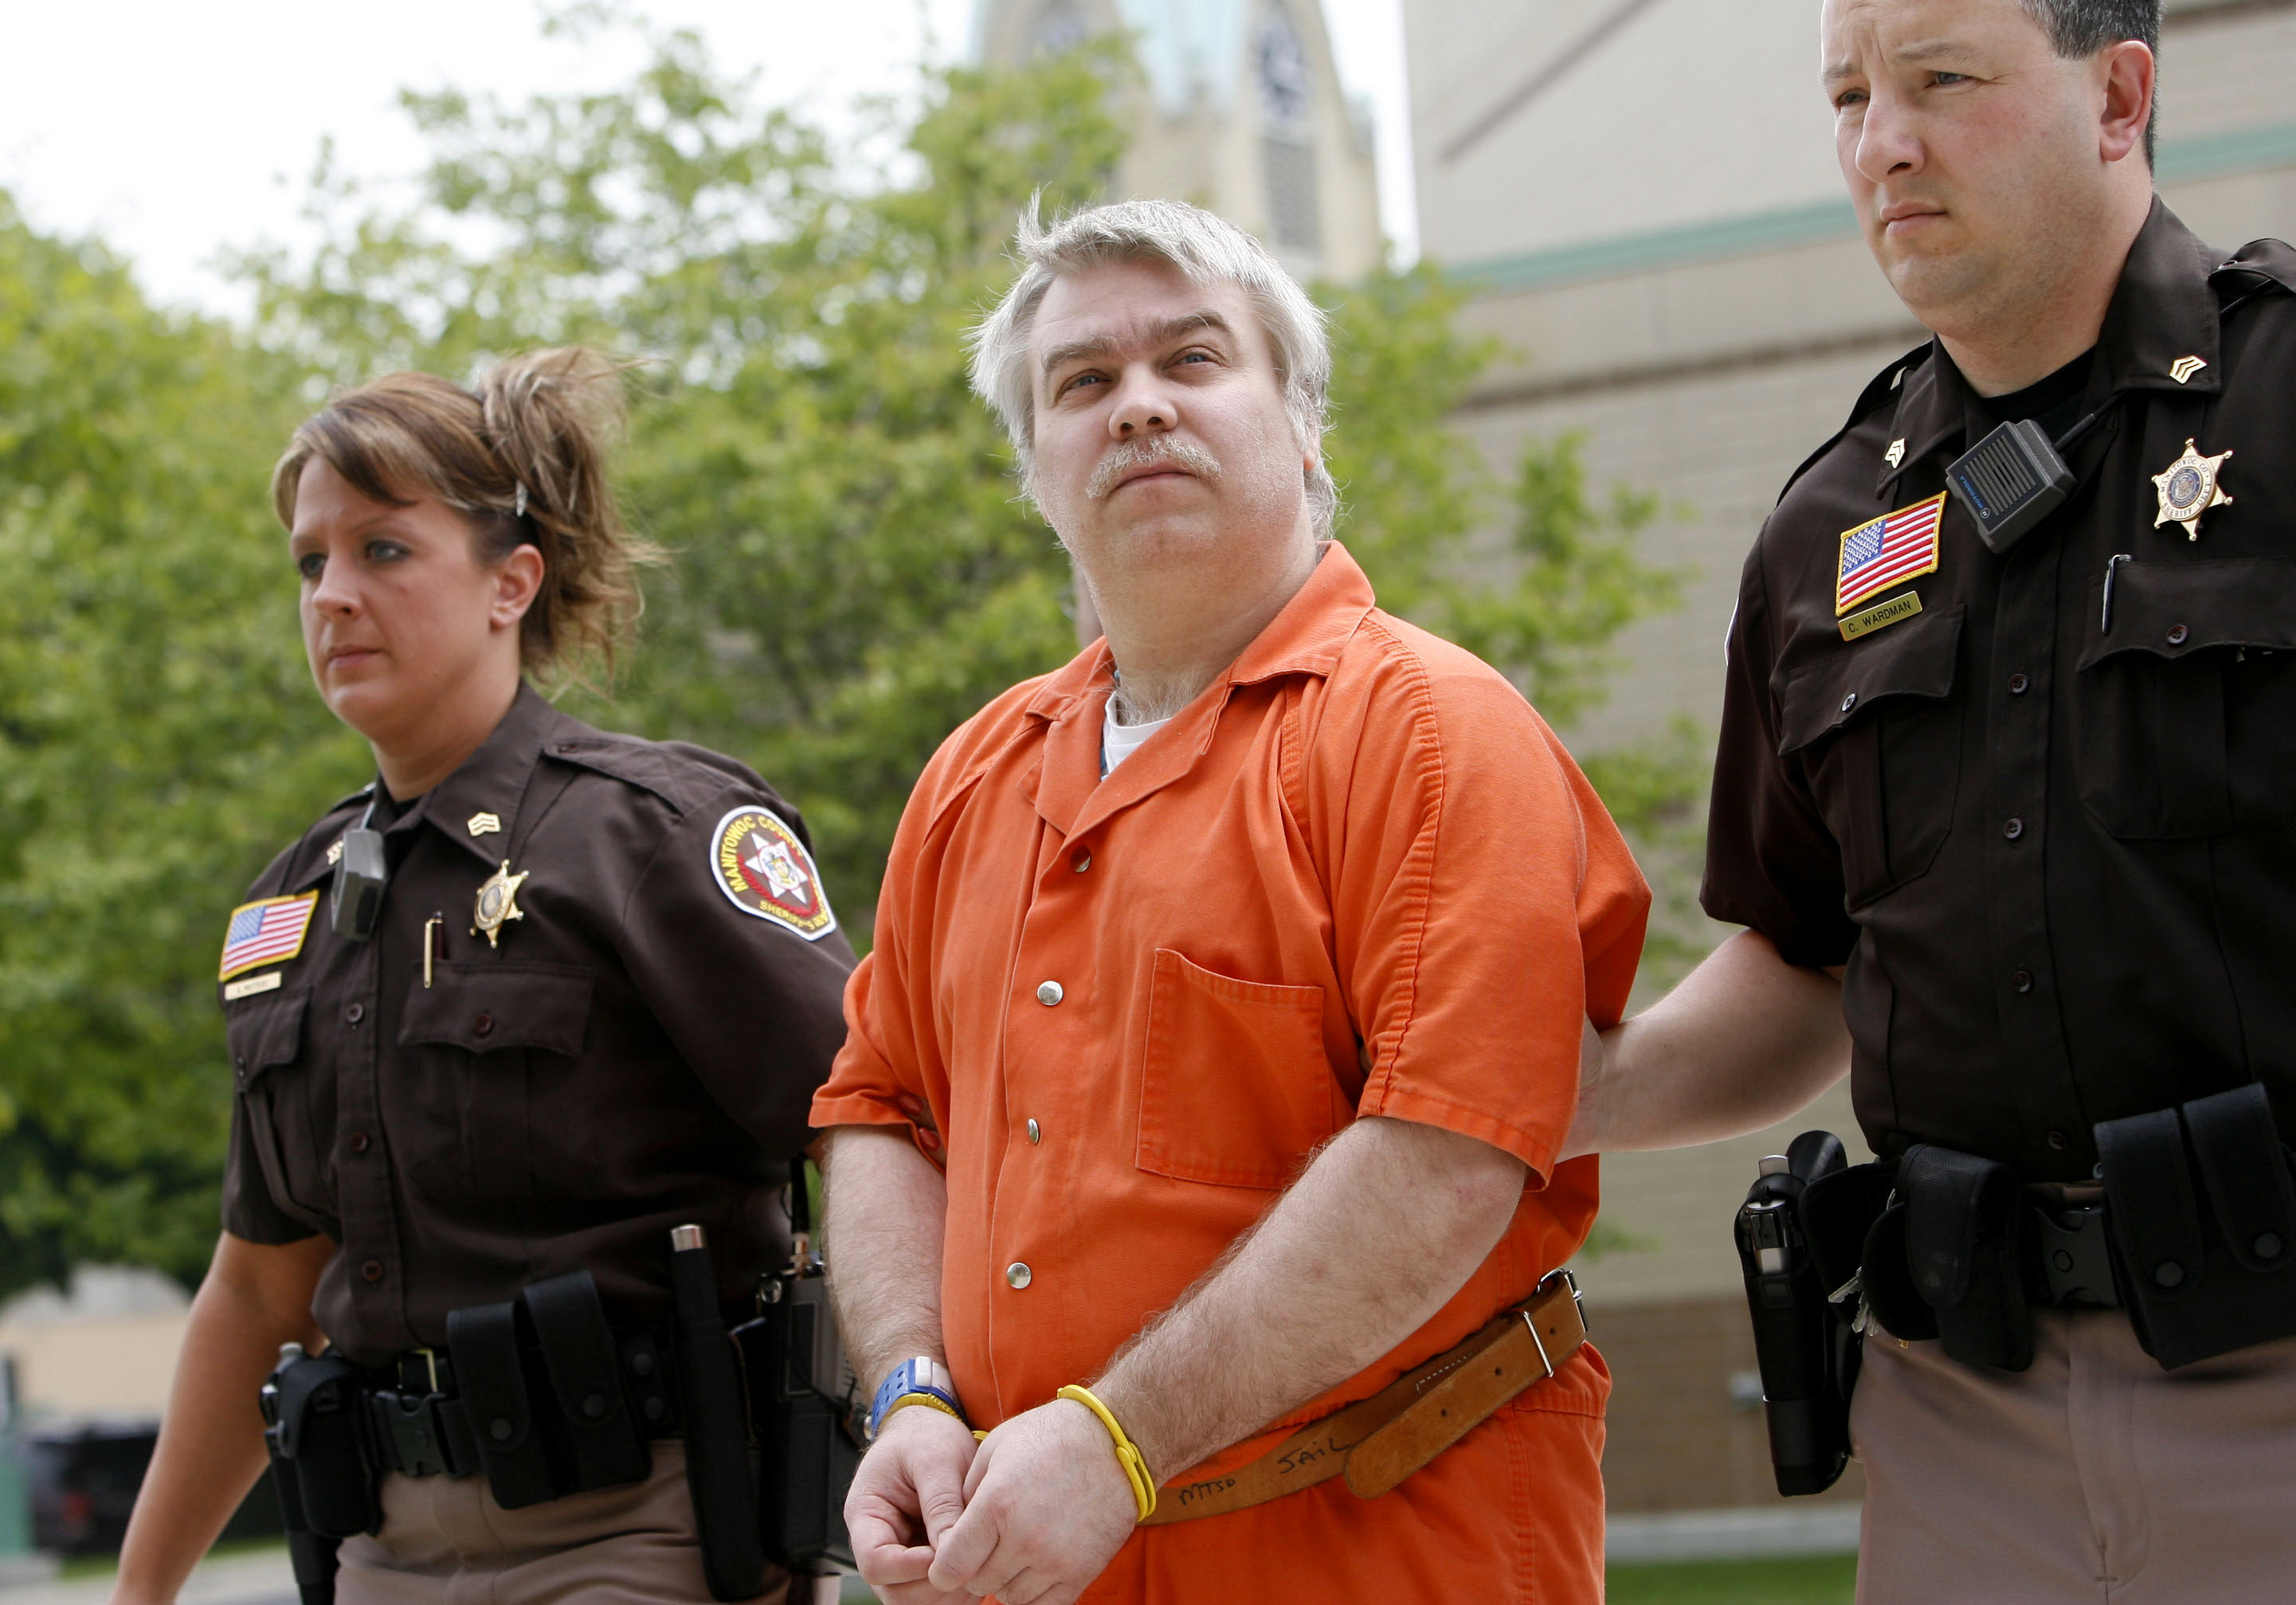 Steven Avery being led away from his home in handcuffs by police